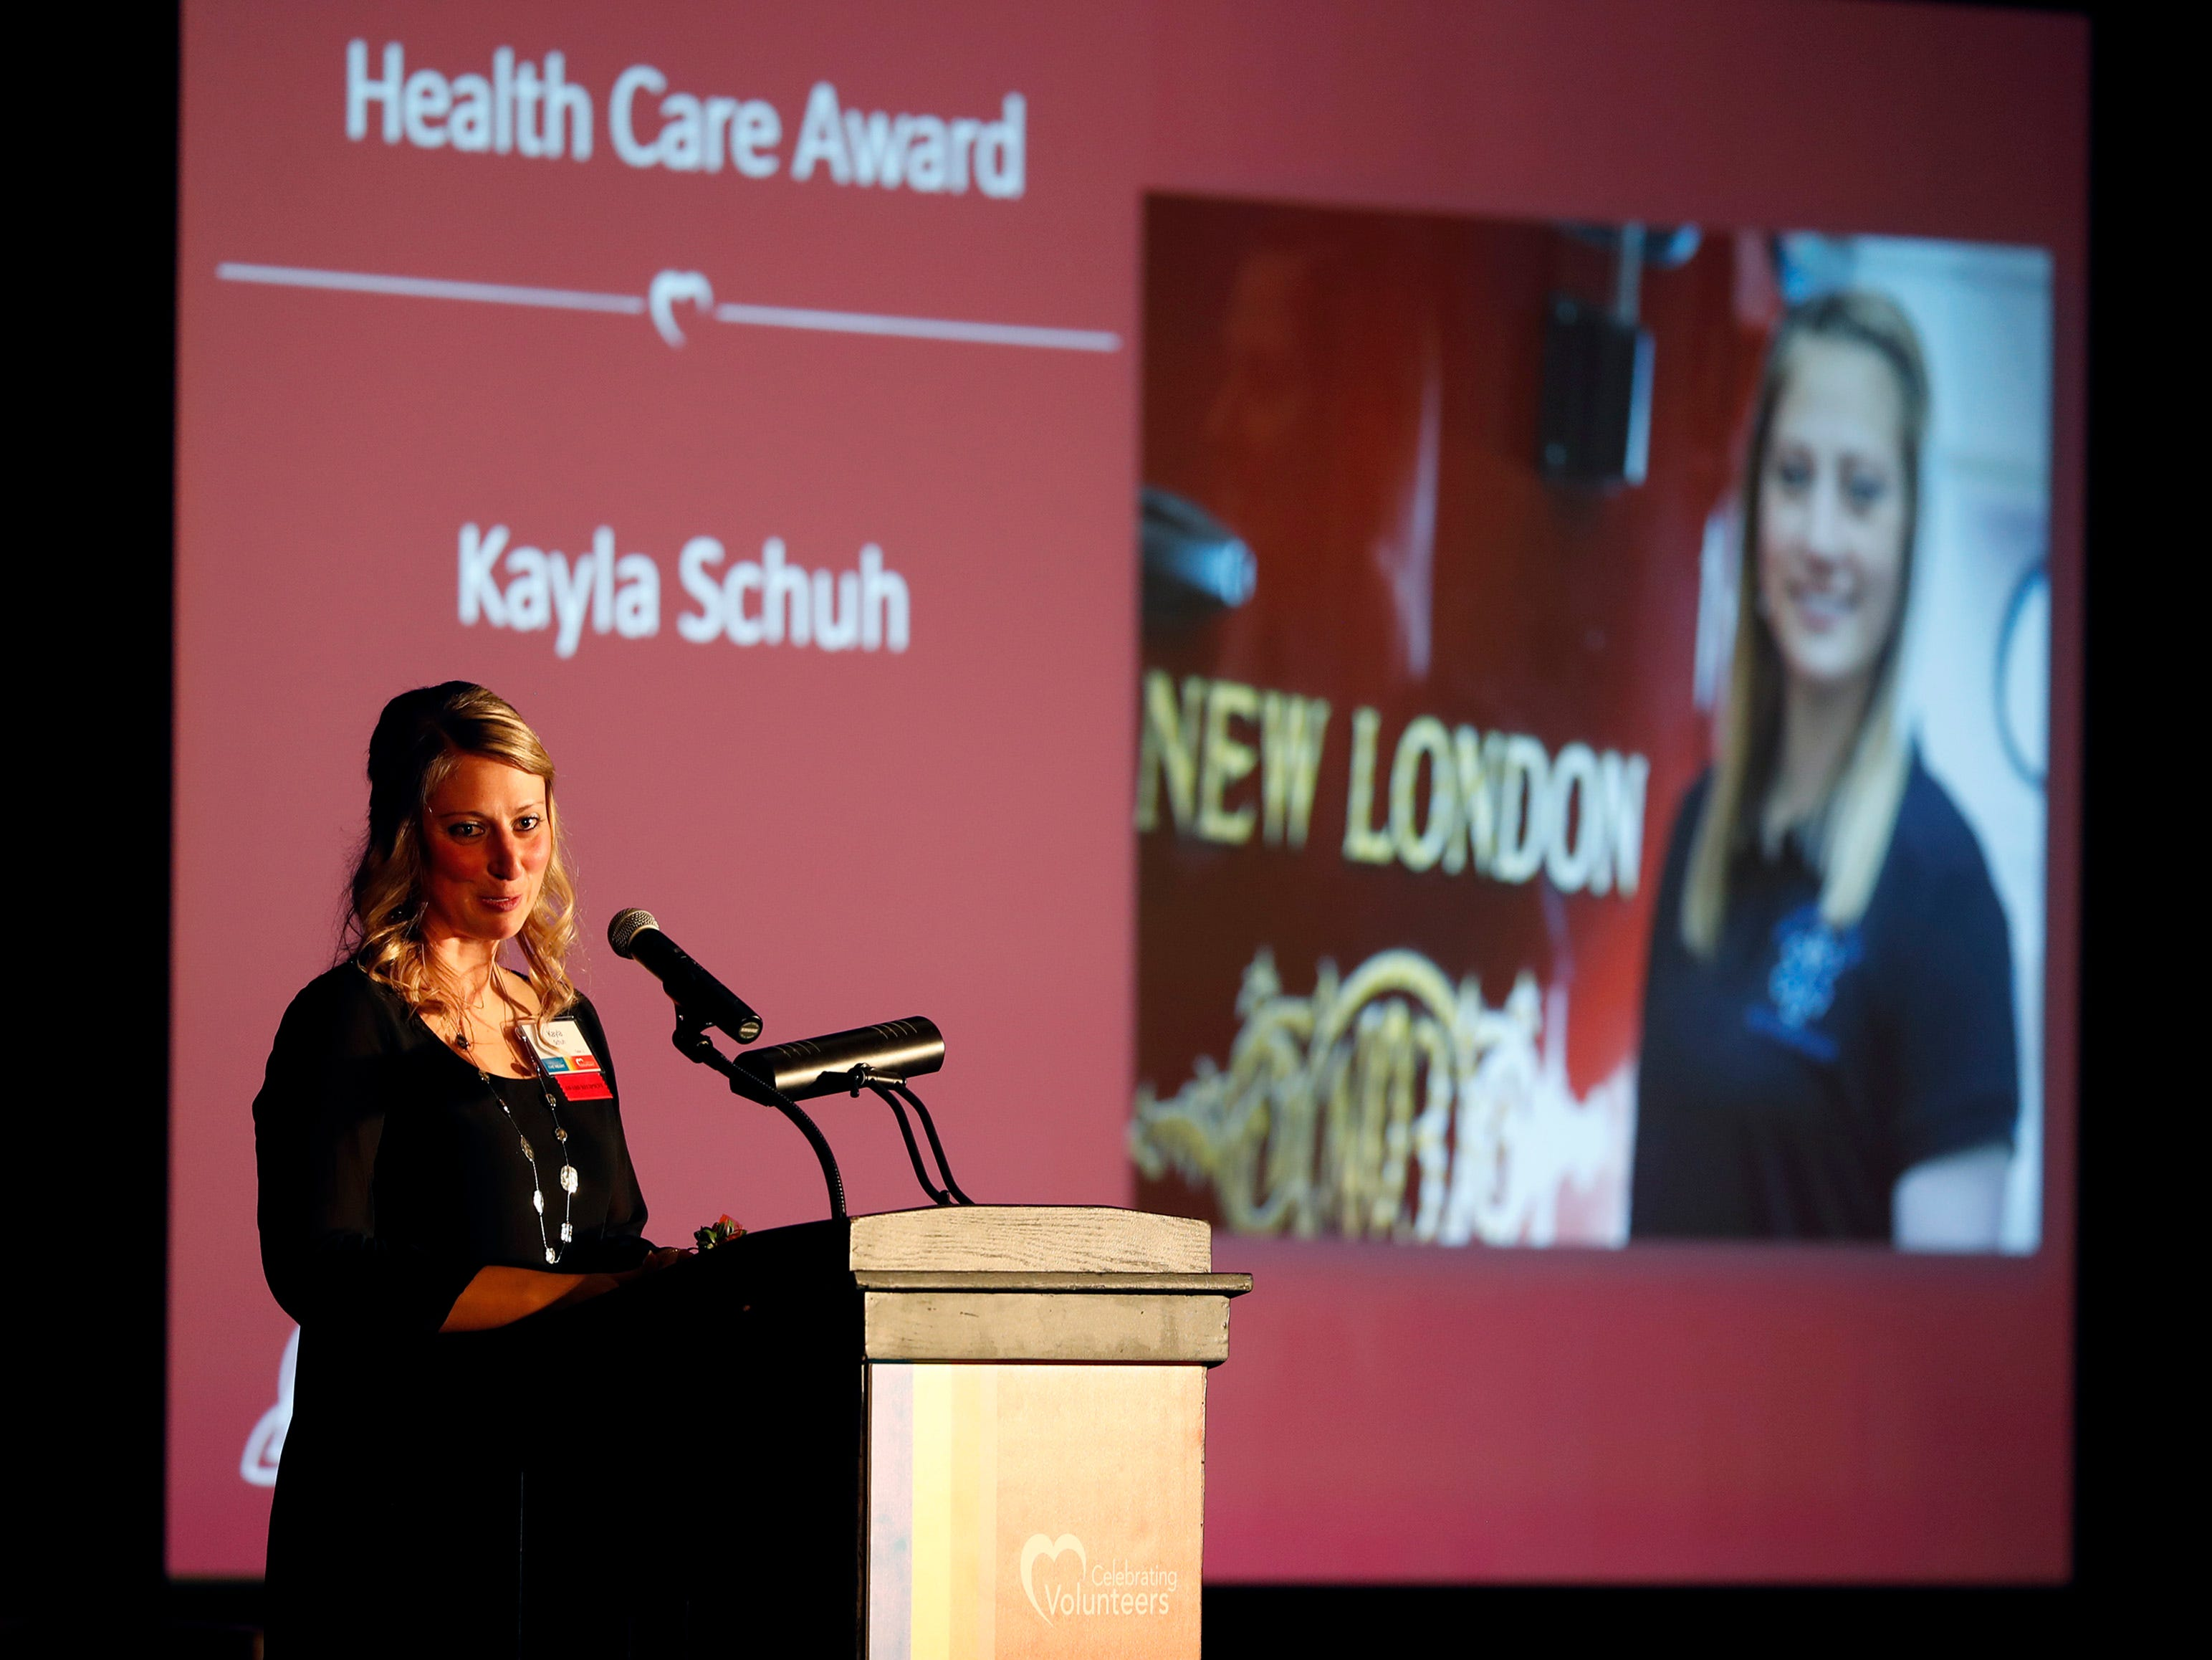 Kayla Schuh gives a speech after receiving the Health Care Award during the 22nd Annual Celebrating Volunteers Community Gala Wednesday, May 1, 2019, at the Red Lion Hotel Paper Valley in Appleton, Wis. Danny Damiani/USA TODAY NETWORK-Wisconsin